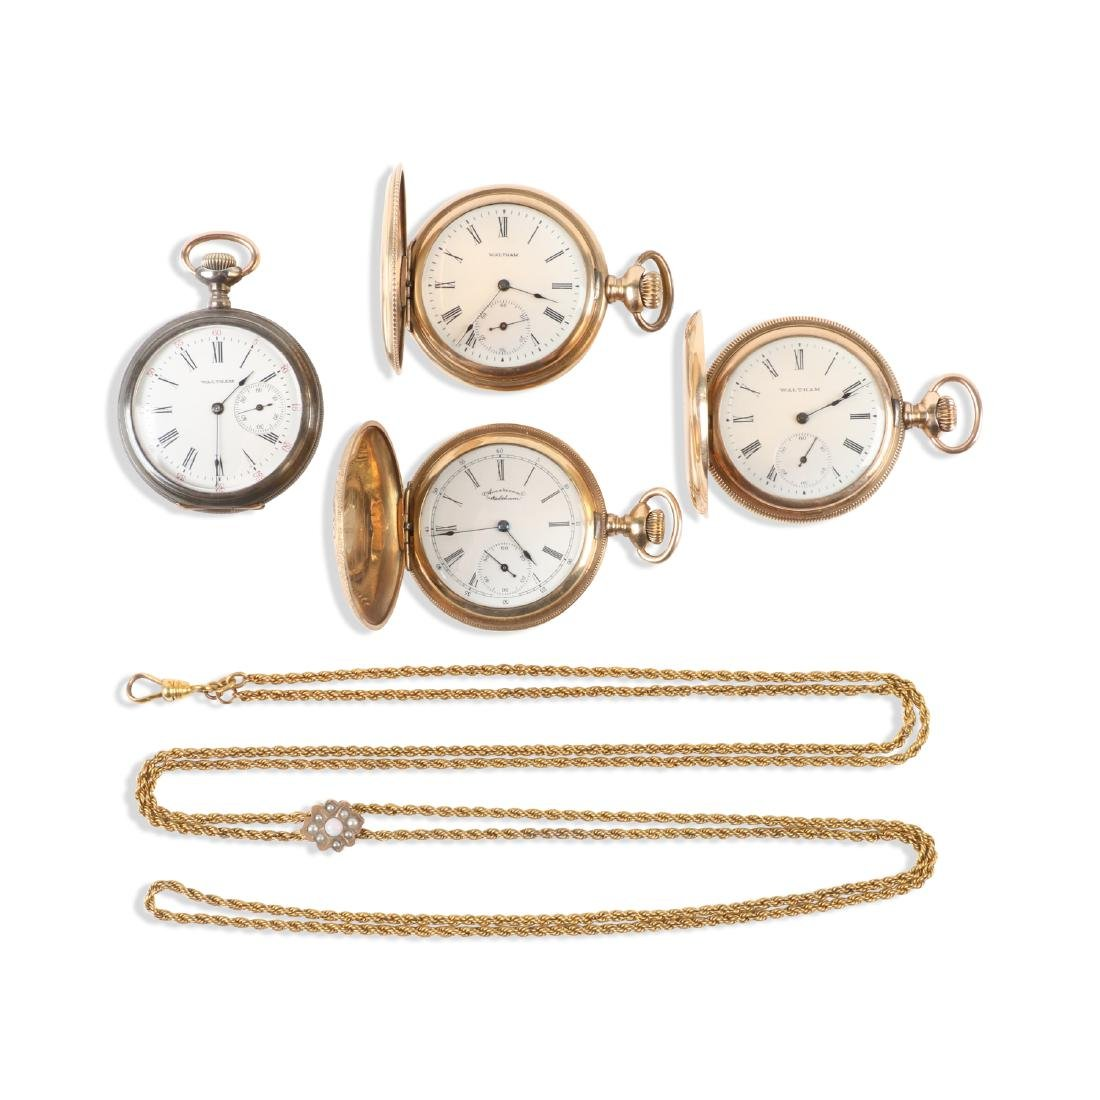 Waltham, Lady's Pocket Watches